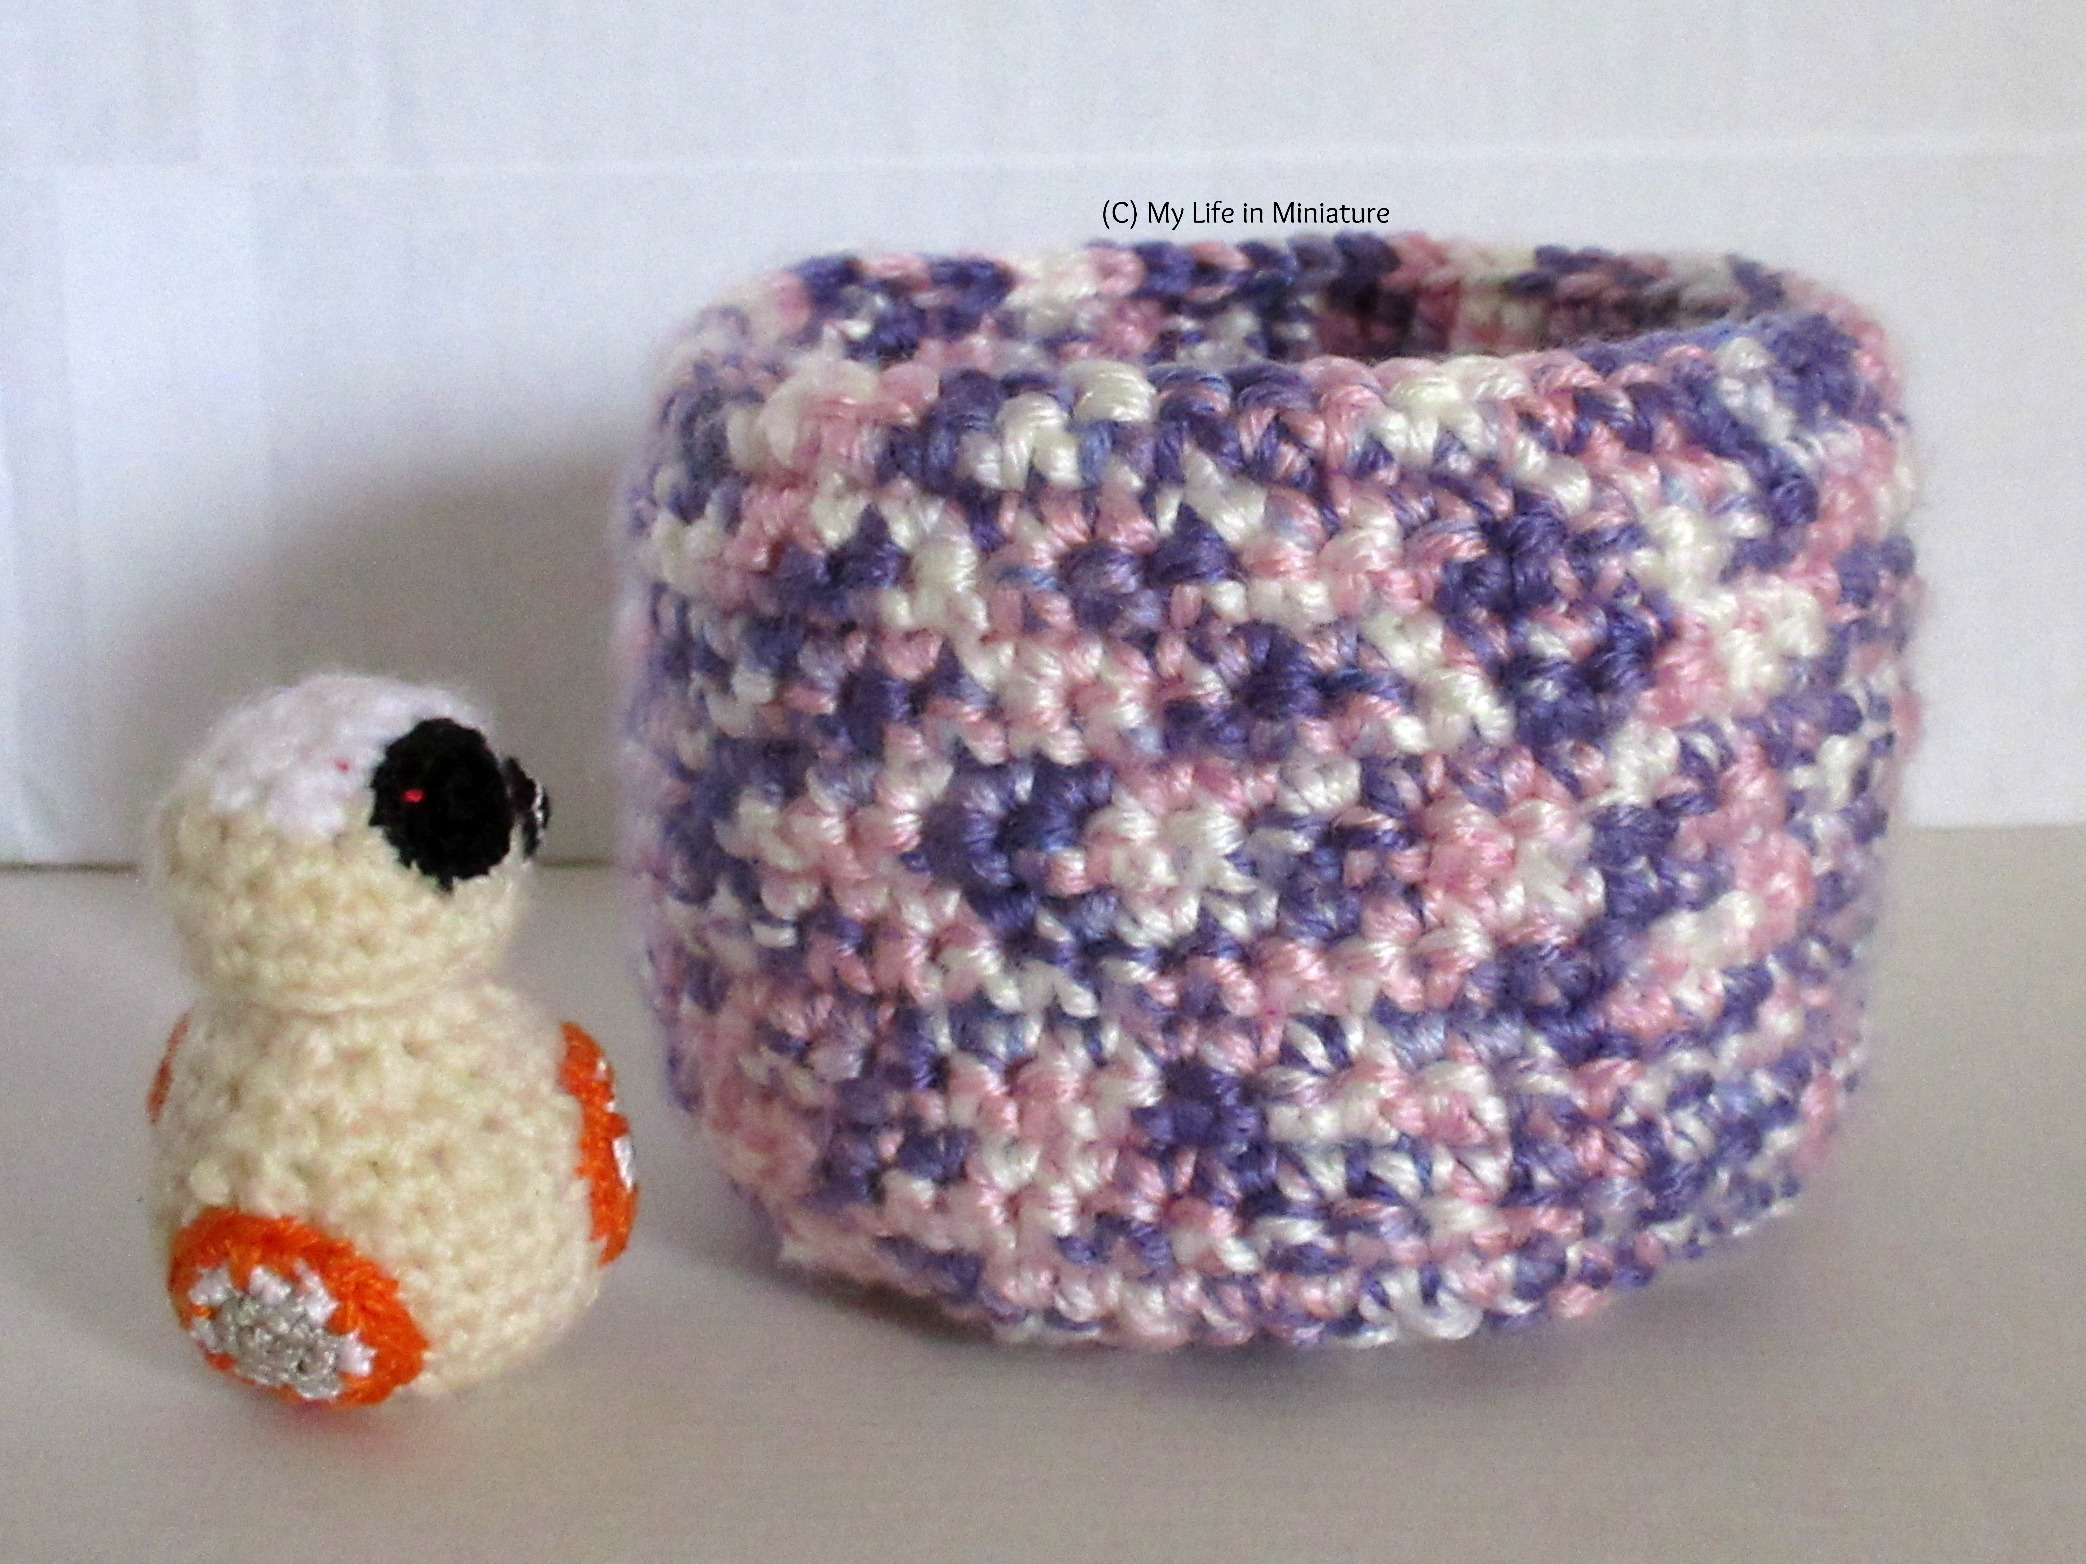 The finished crocheted nest stands next to BB-8 for scale against a white background. The nest is about 1 and a half times the height of BB-8.